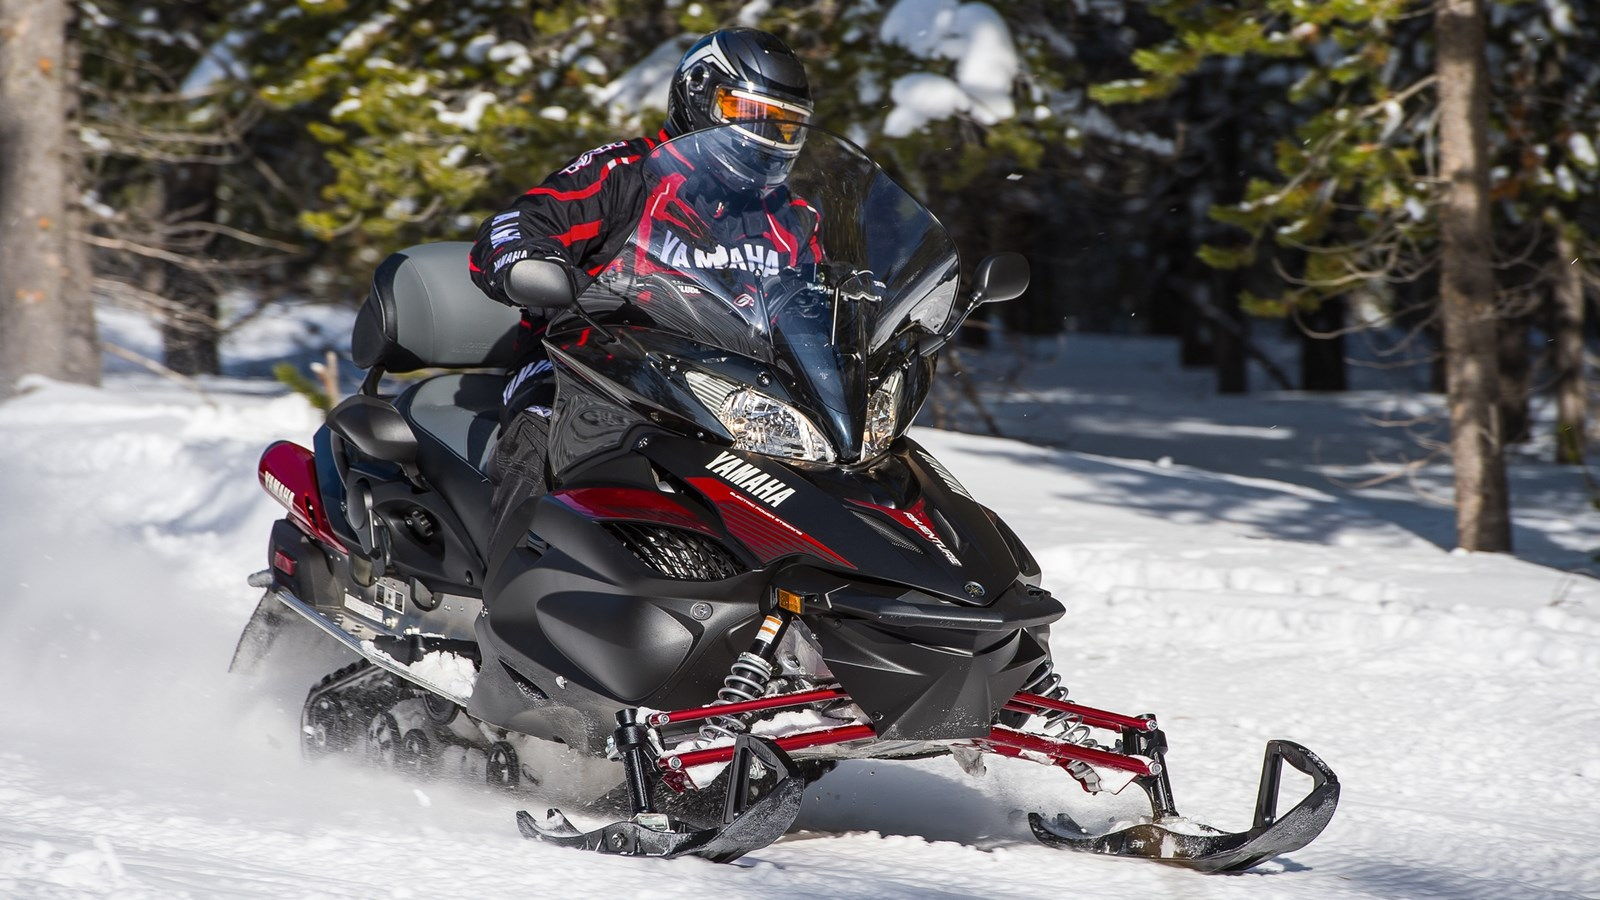 2015-Yamaha-RSVENTURE-TF-EU-Power-Black-